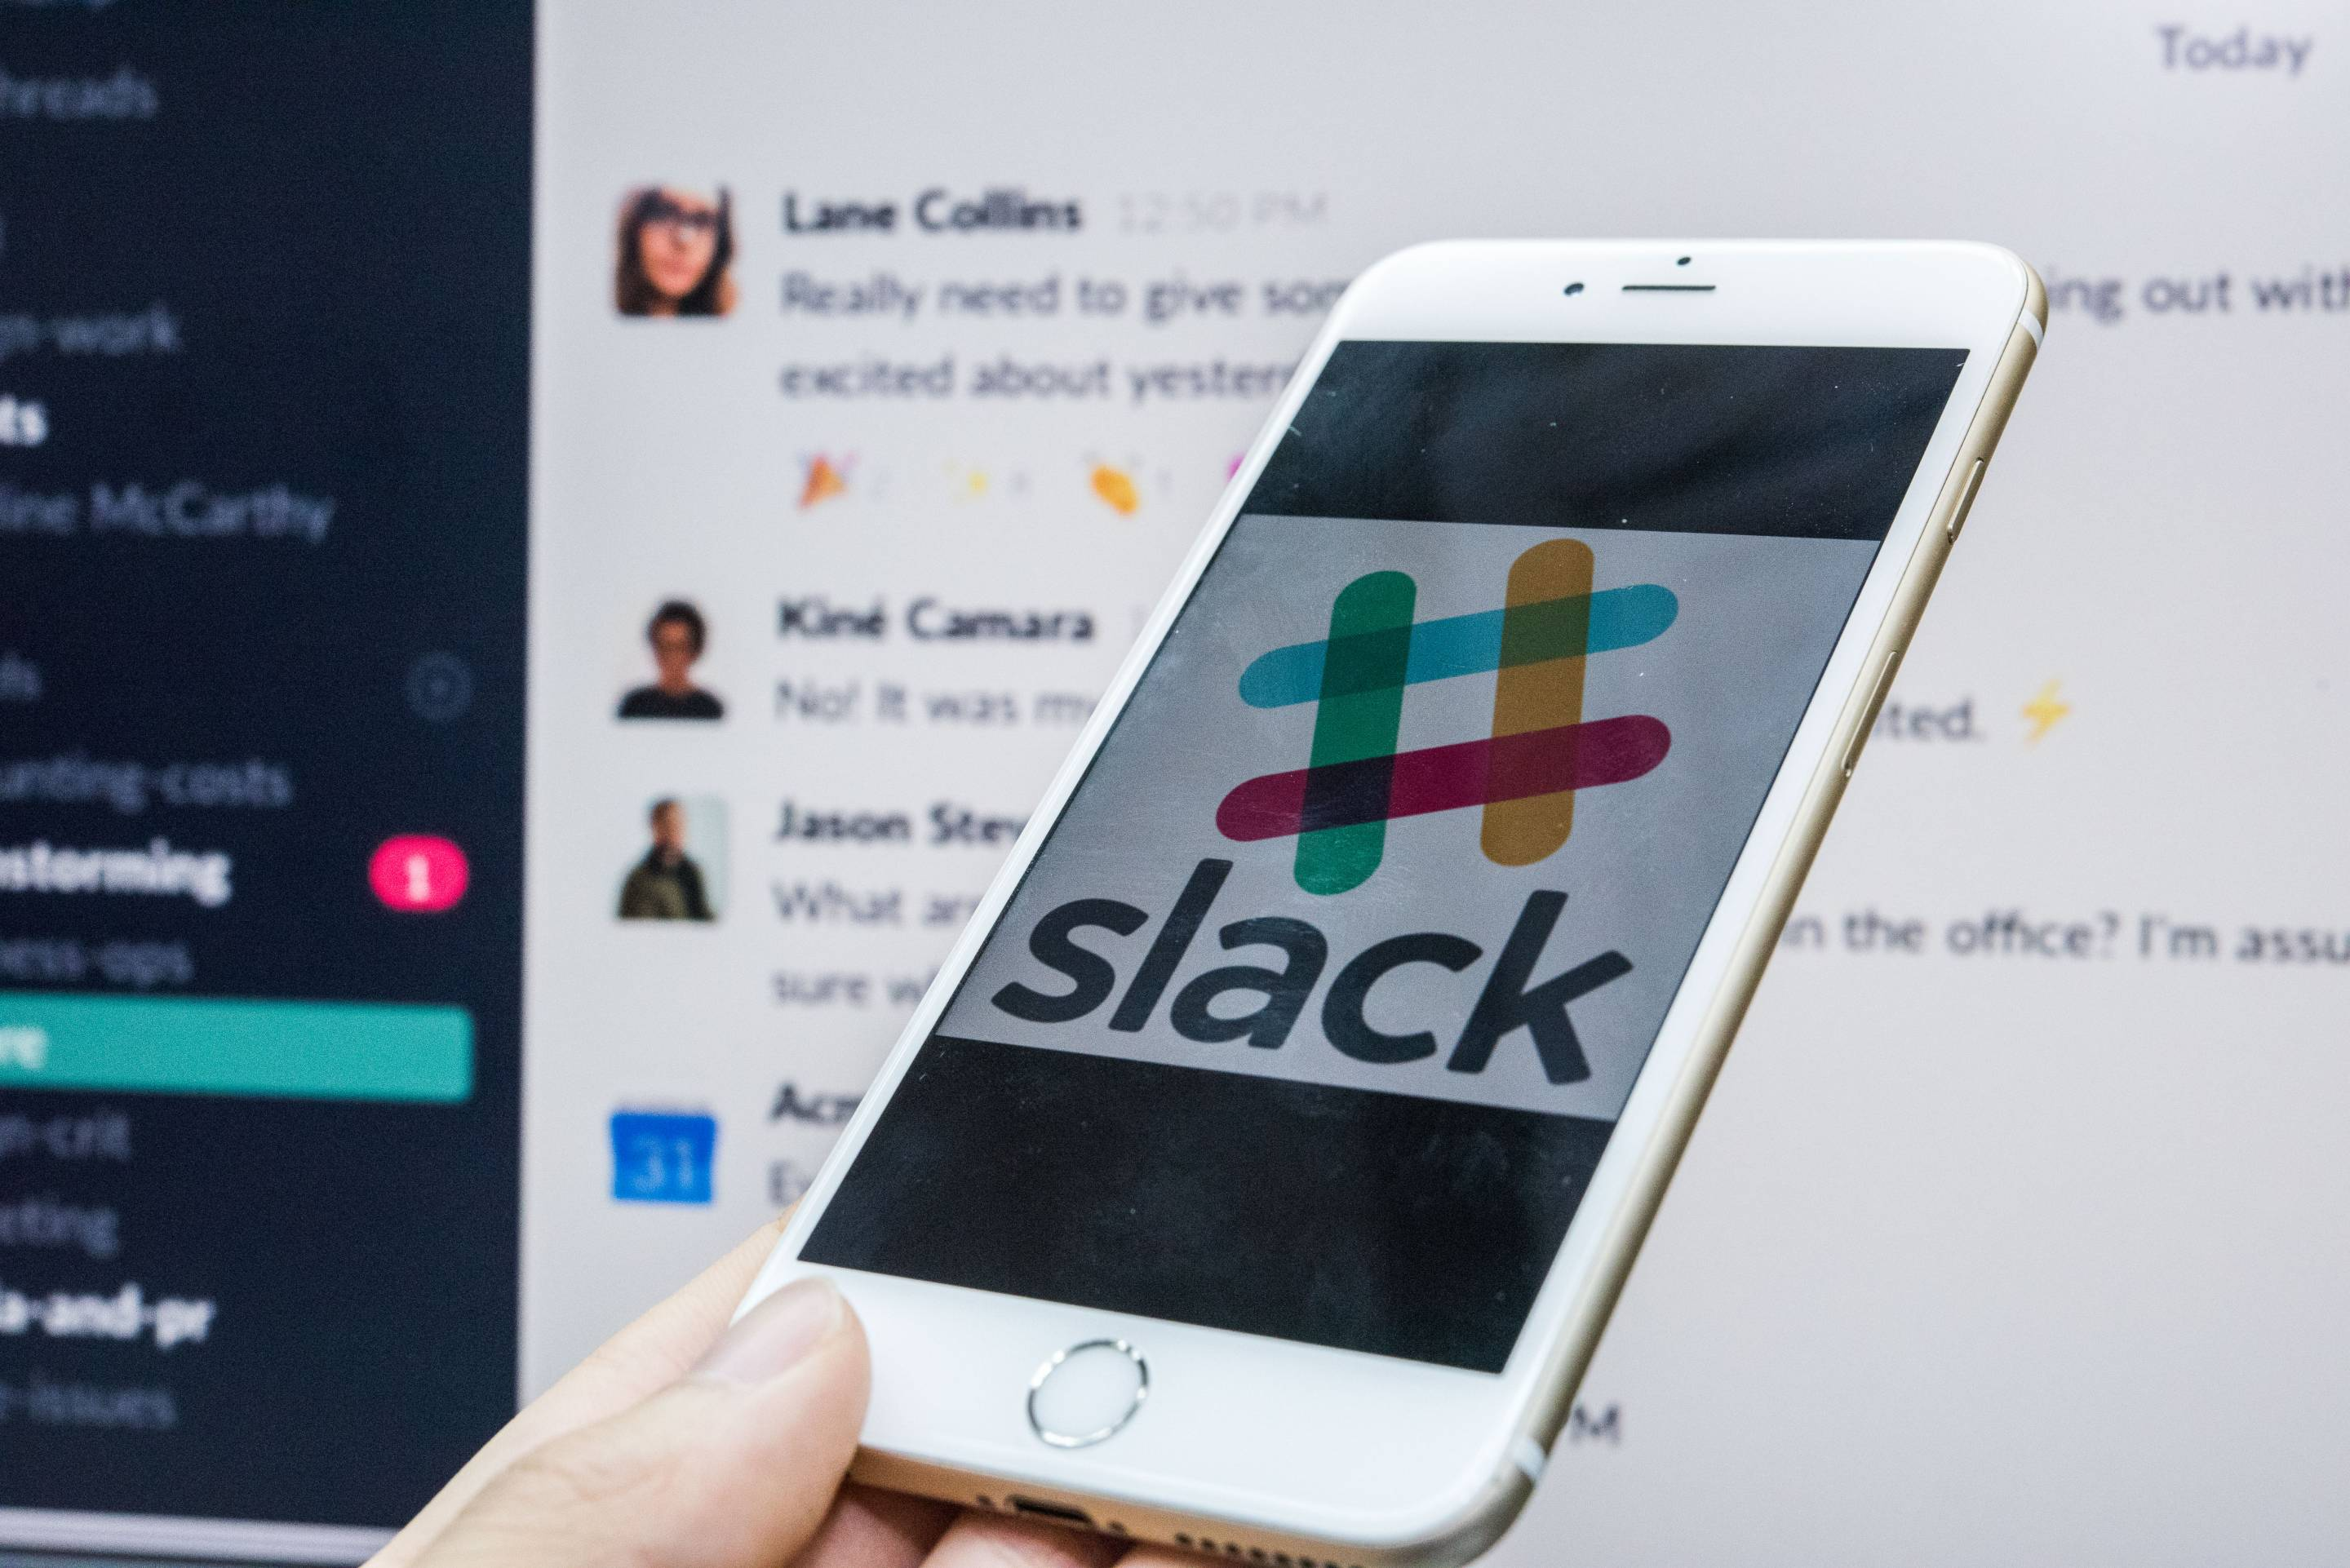 What to Know About Slack's Non-IPO Direct Public Listing | Fortune